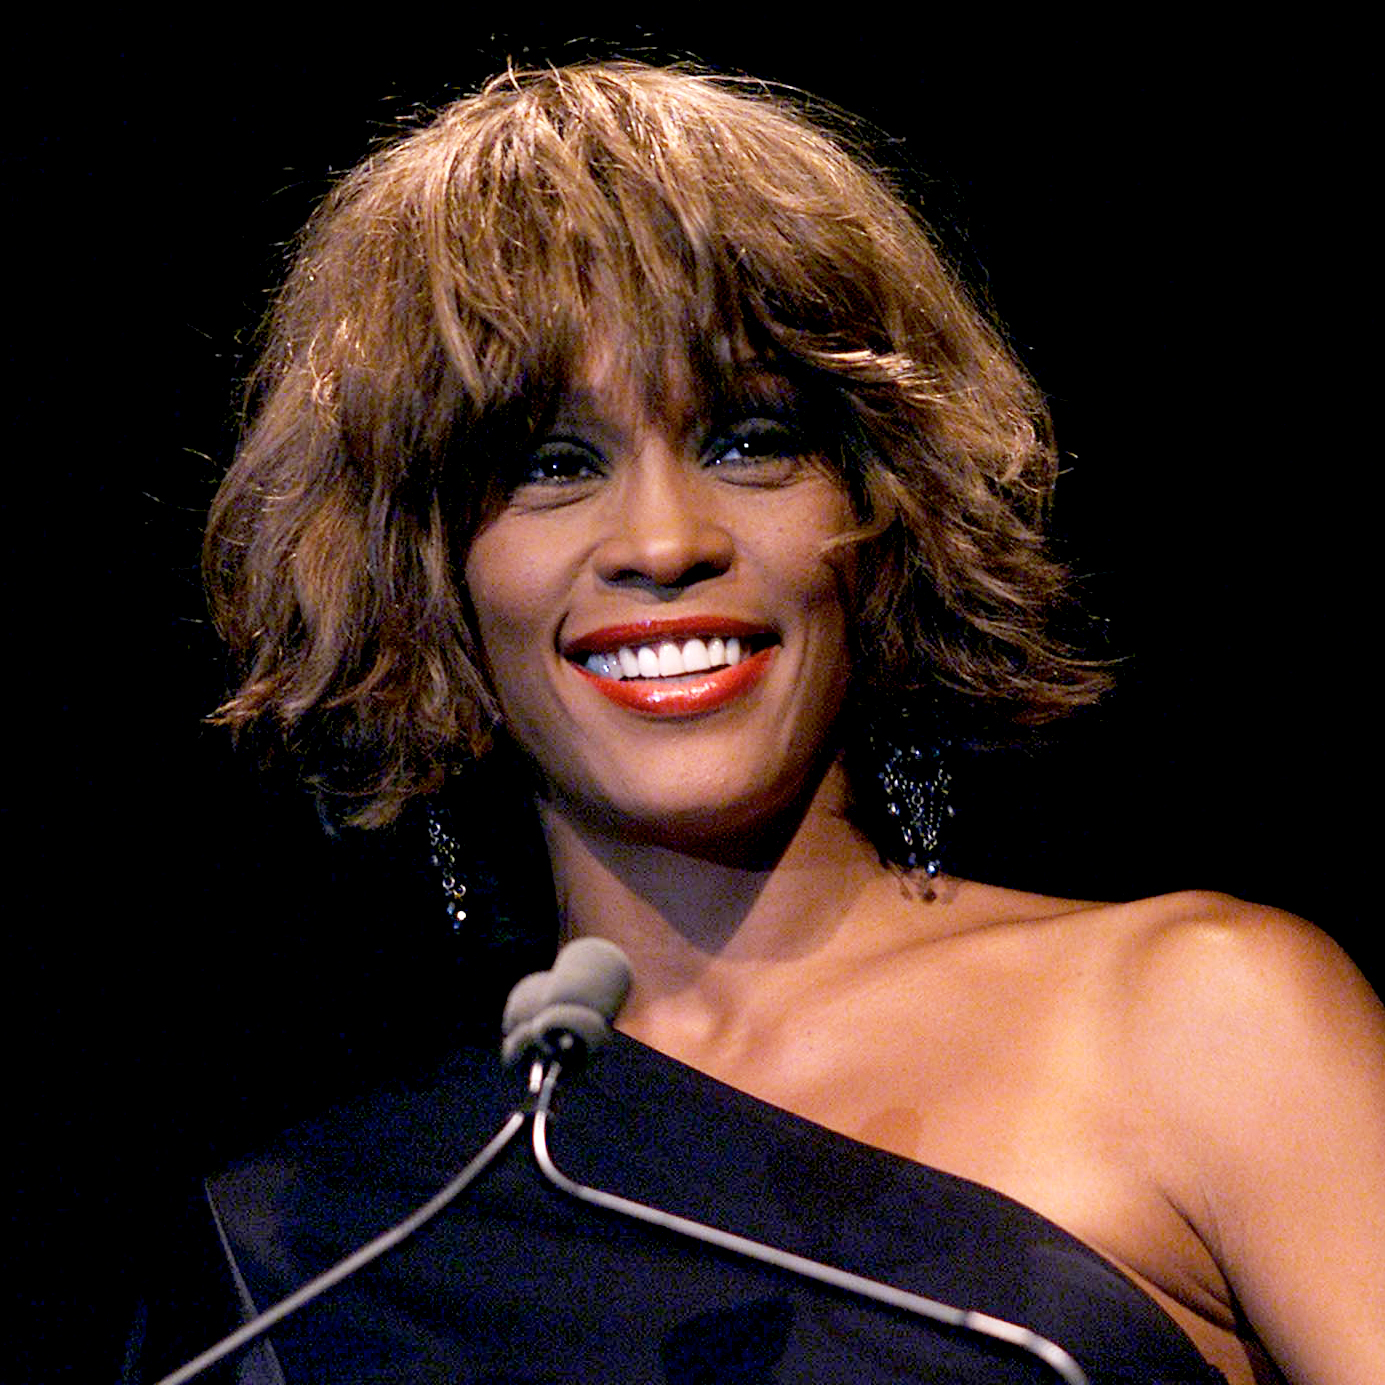 Whitney-Houston - During a tumultuous 15-year marriage to bad boy Bobby Brown, the late singer reportedly suffered from spousal abuse and even called the police on her husband after a verbal altercation turned physical.